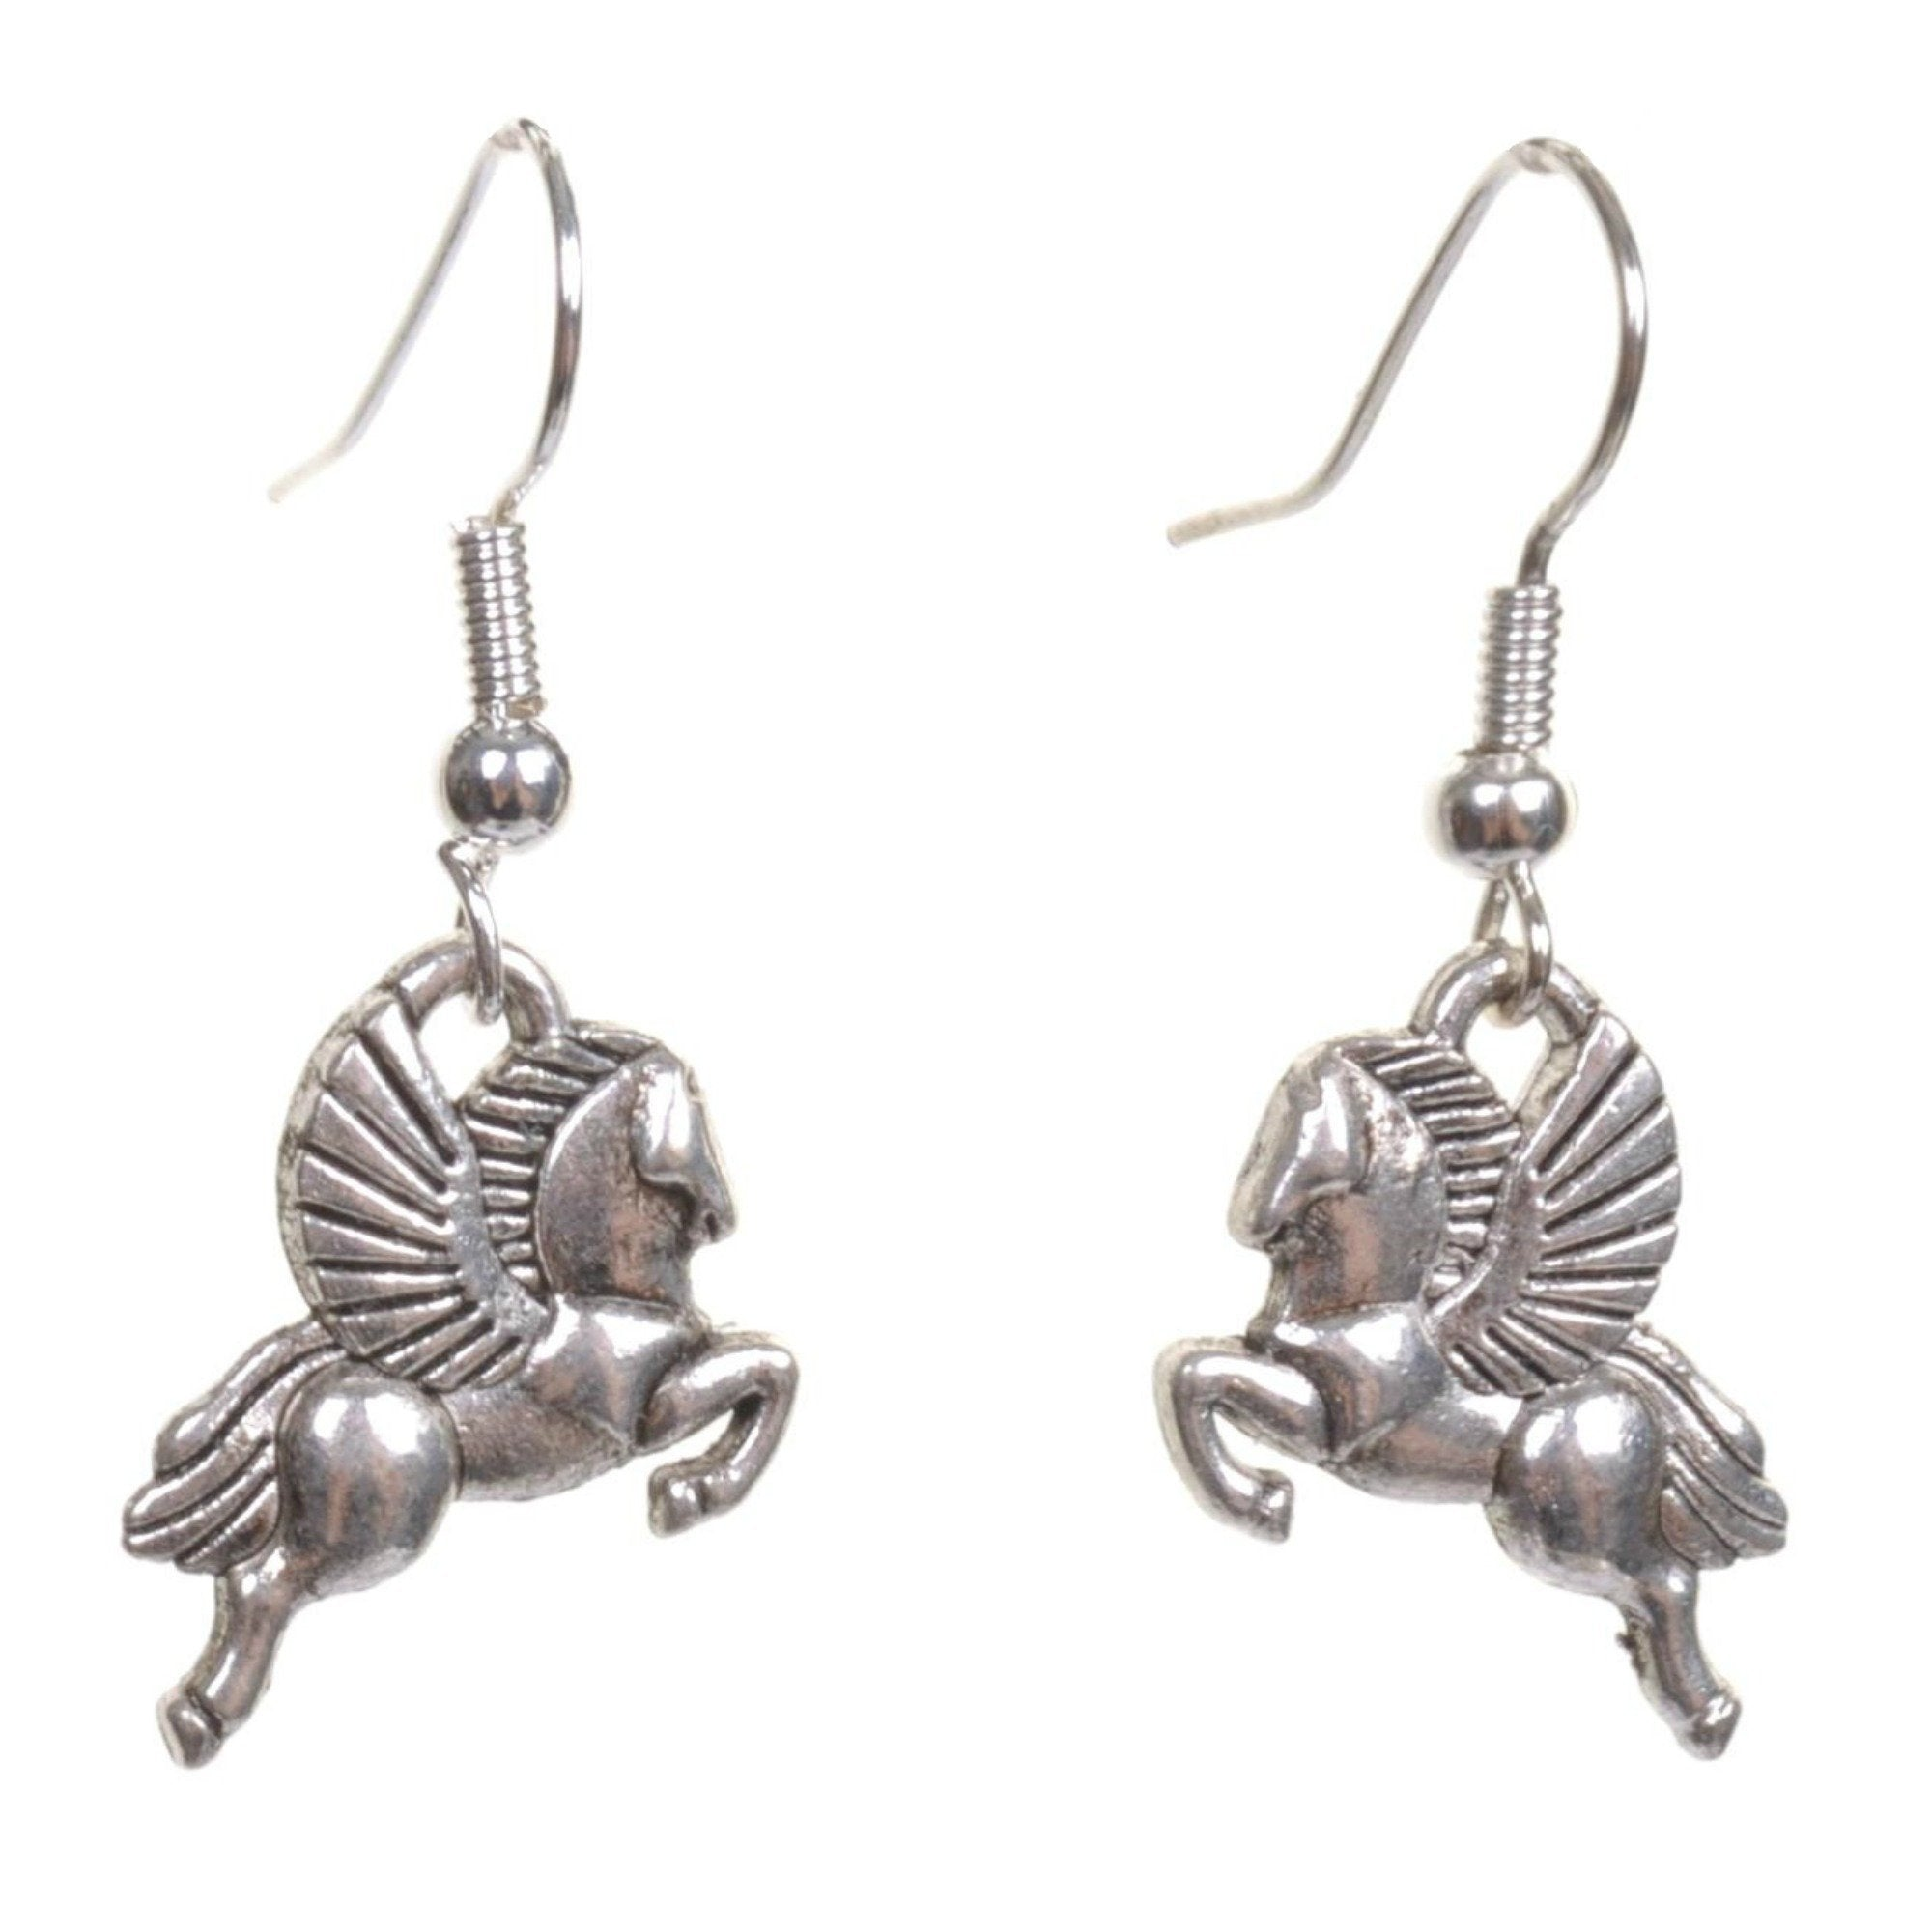 Little Silver Pegasus Earrings - Minimum Mouse